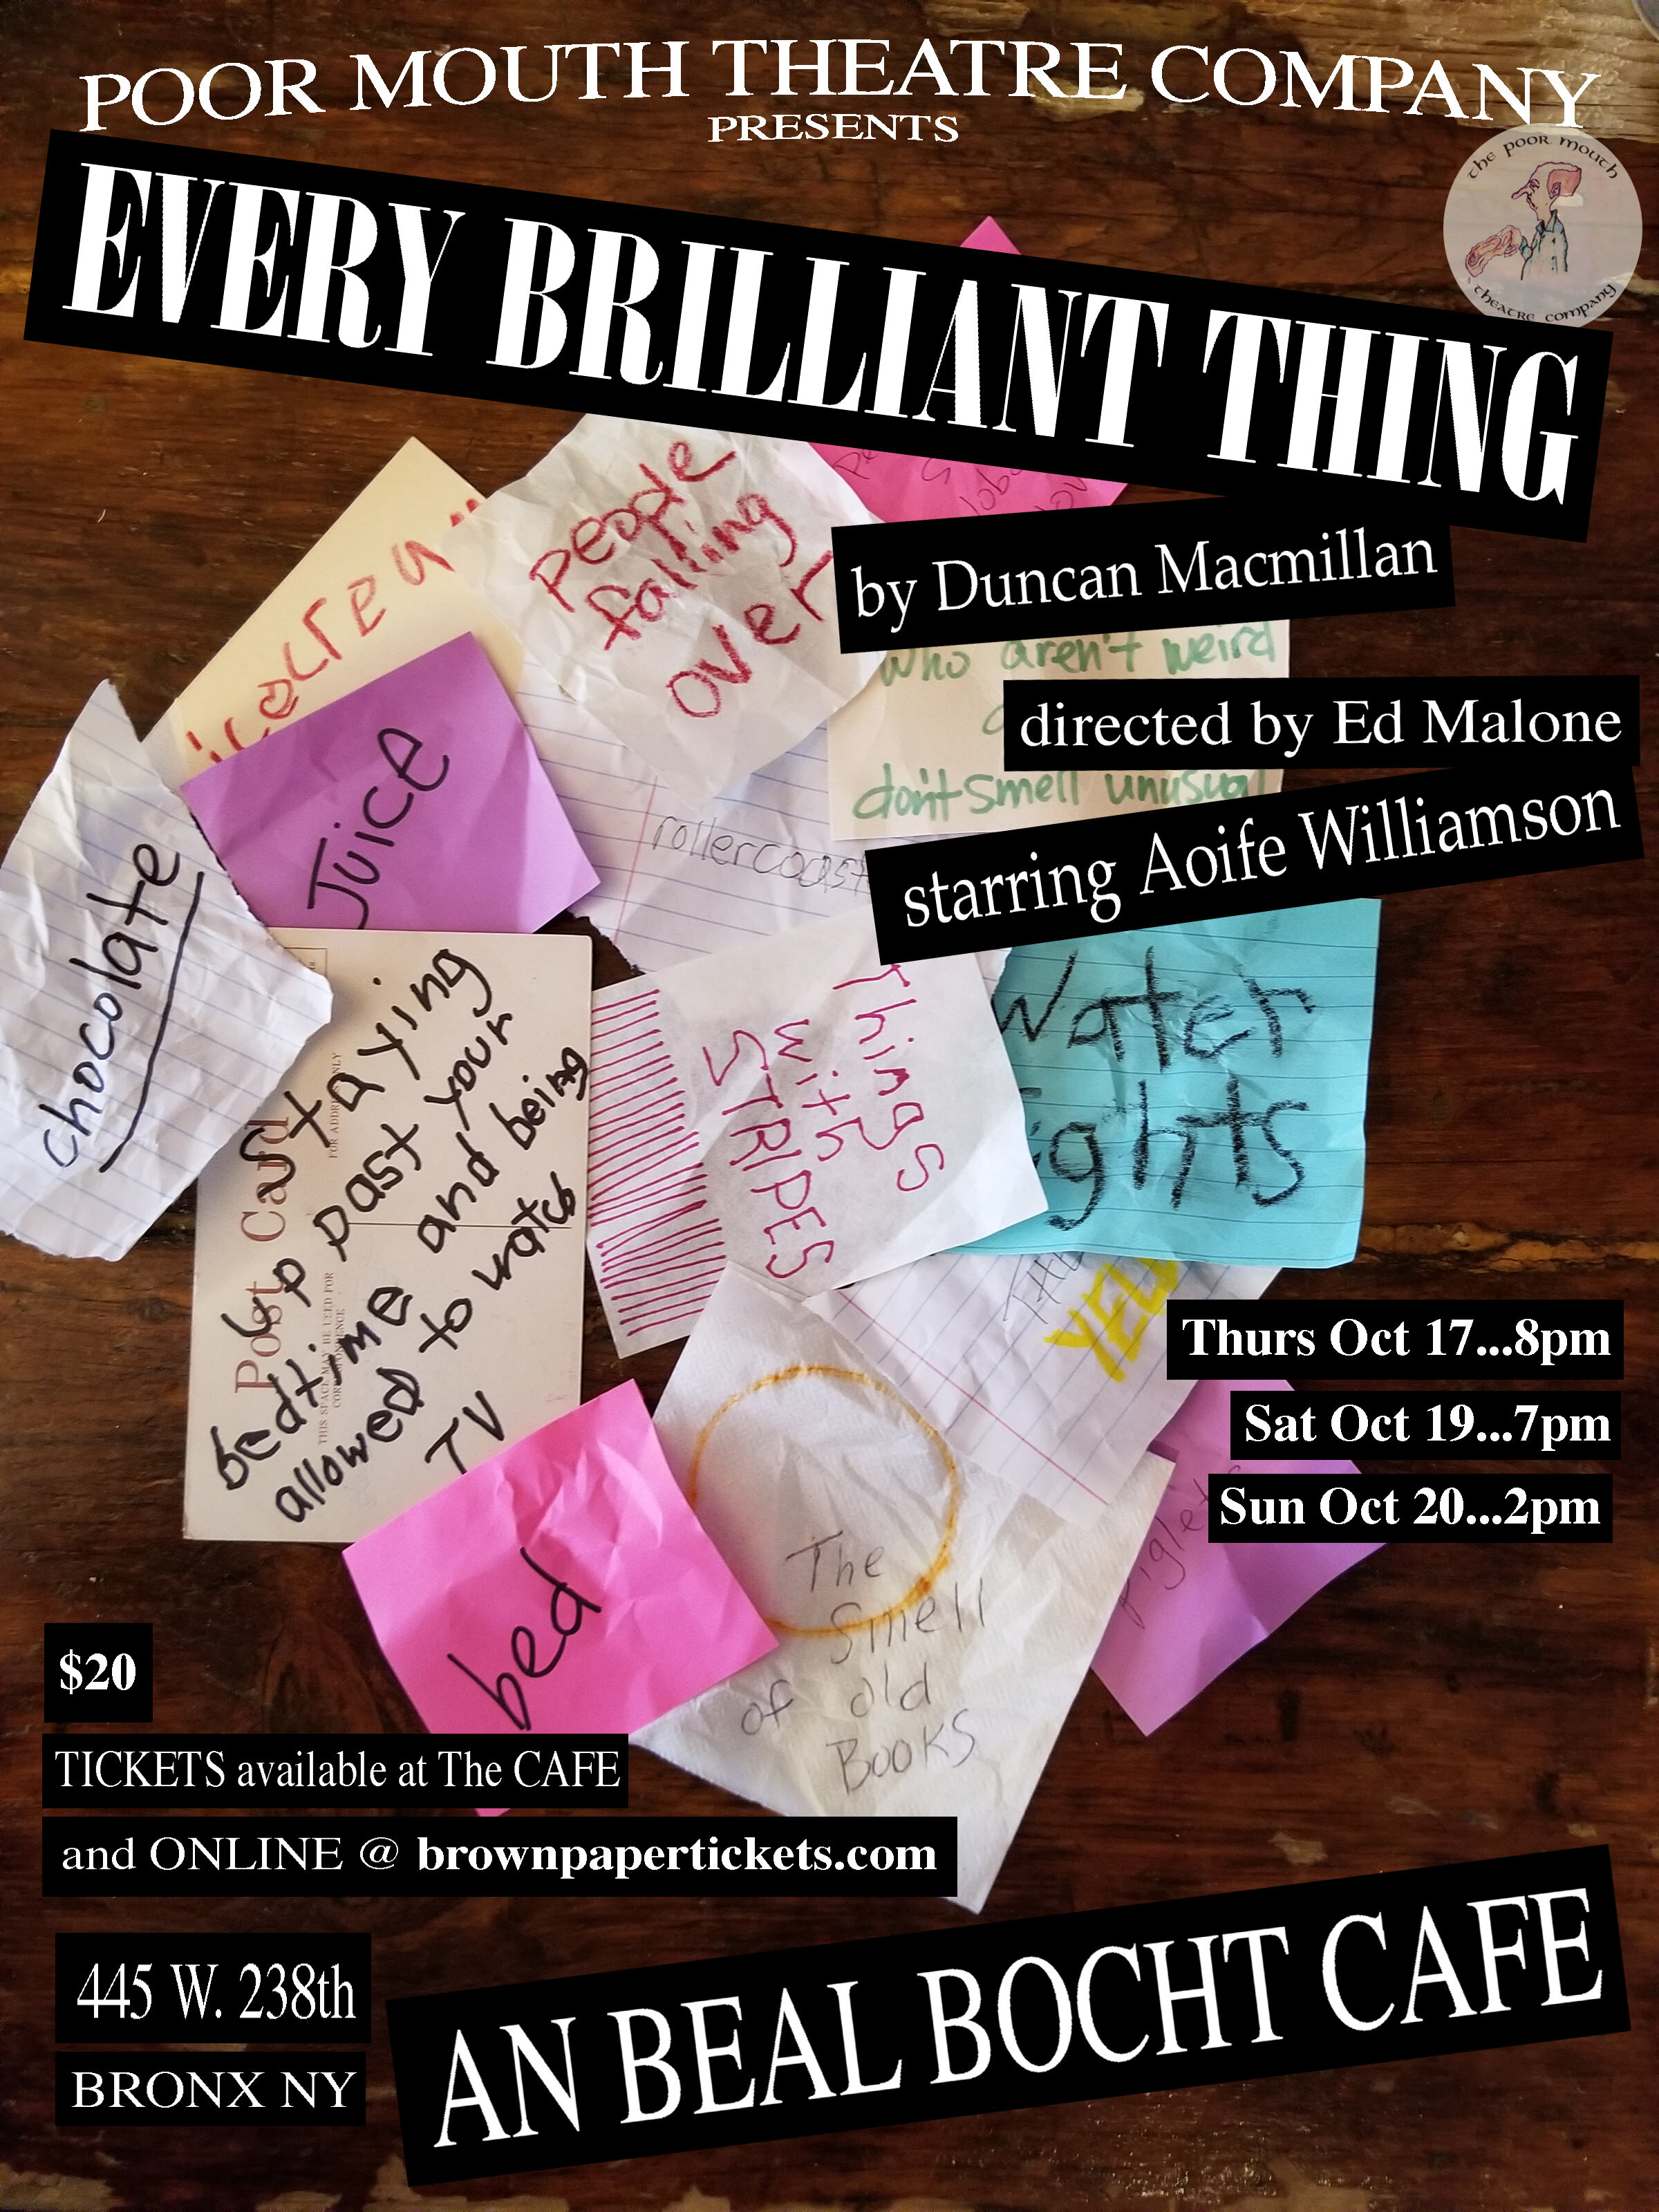 OLD FLYER - Poor mouth theatre company presents every brilliant thing by duncan macmillan directed by ed malone starting aoife williamson thurs oct 17…8pm sat oct 19…7pm sun oct 20…2pm $20 tickets available at the cafe and online @brownpapertickets.com 445 w.238th bronx ny an beal bocht cafe